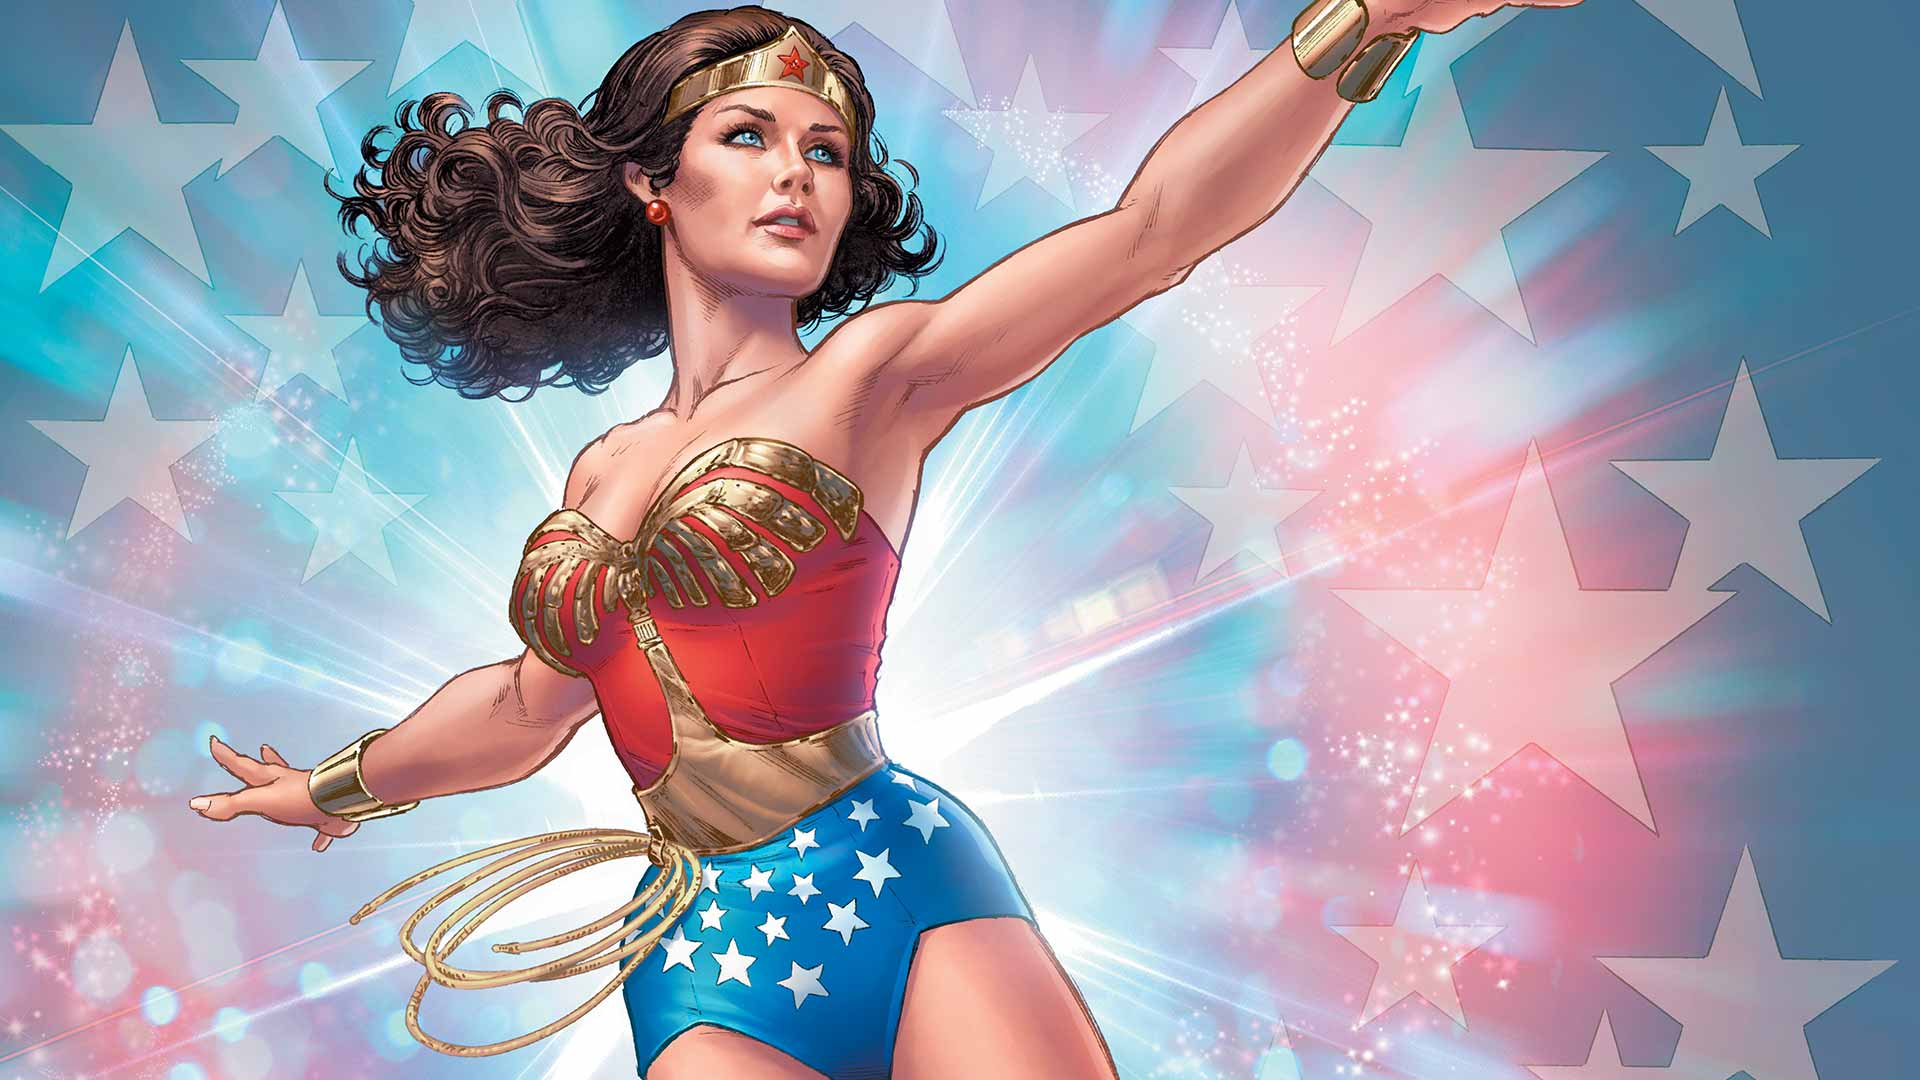 GalleryComics 1920x1080 20150429 WonderWoman77 CMYK new neck v2 552849f55810a9.84883346 DC Superhero Comes Out As Bisexual